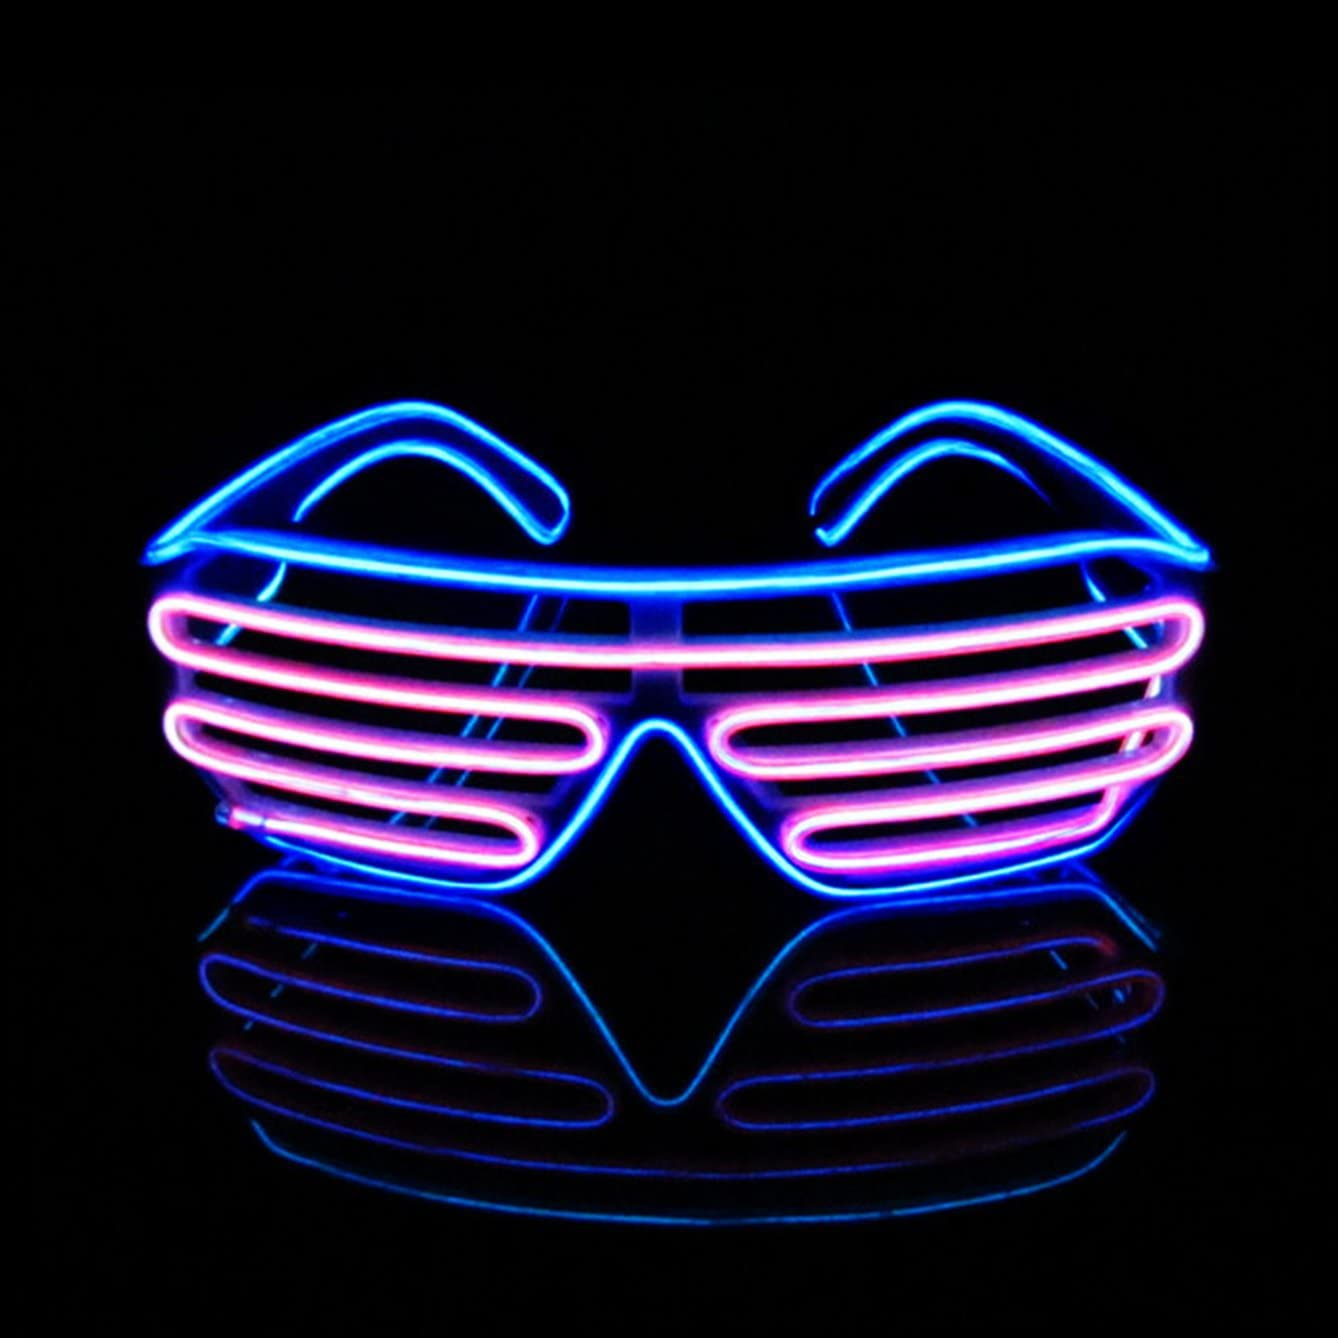 PINFOX Light Up Flashing Shutter Neon Rave Glasses El Wire LED Sunglasses Glow DJ Costumes for Party, 80s, EDM RB03 (Blue - Pink)